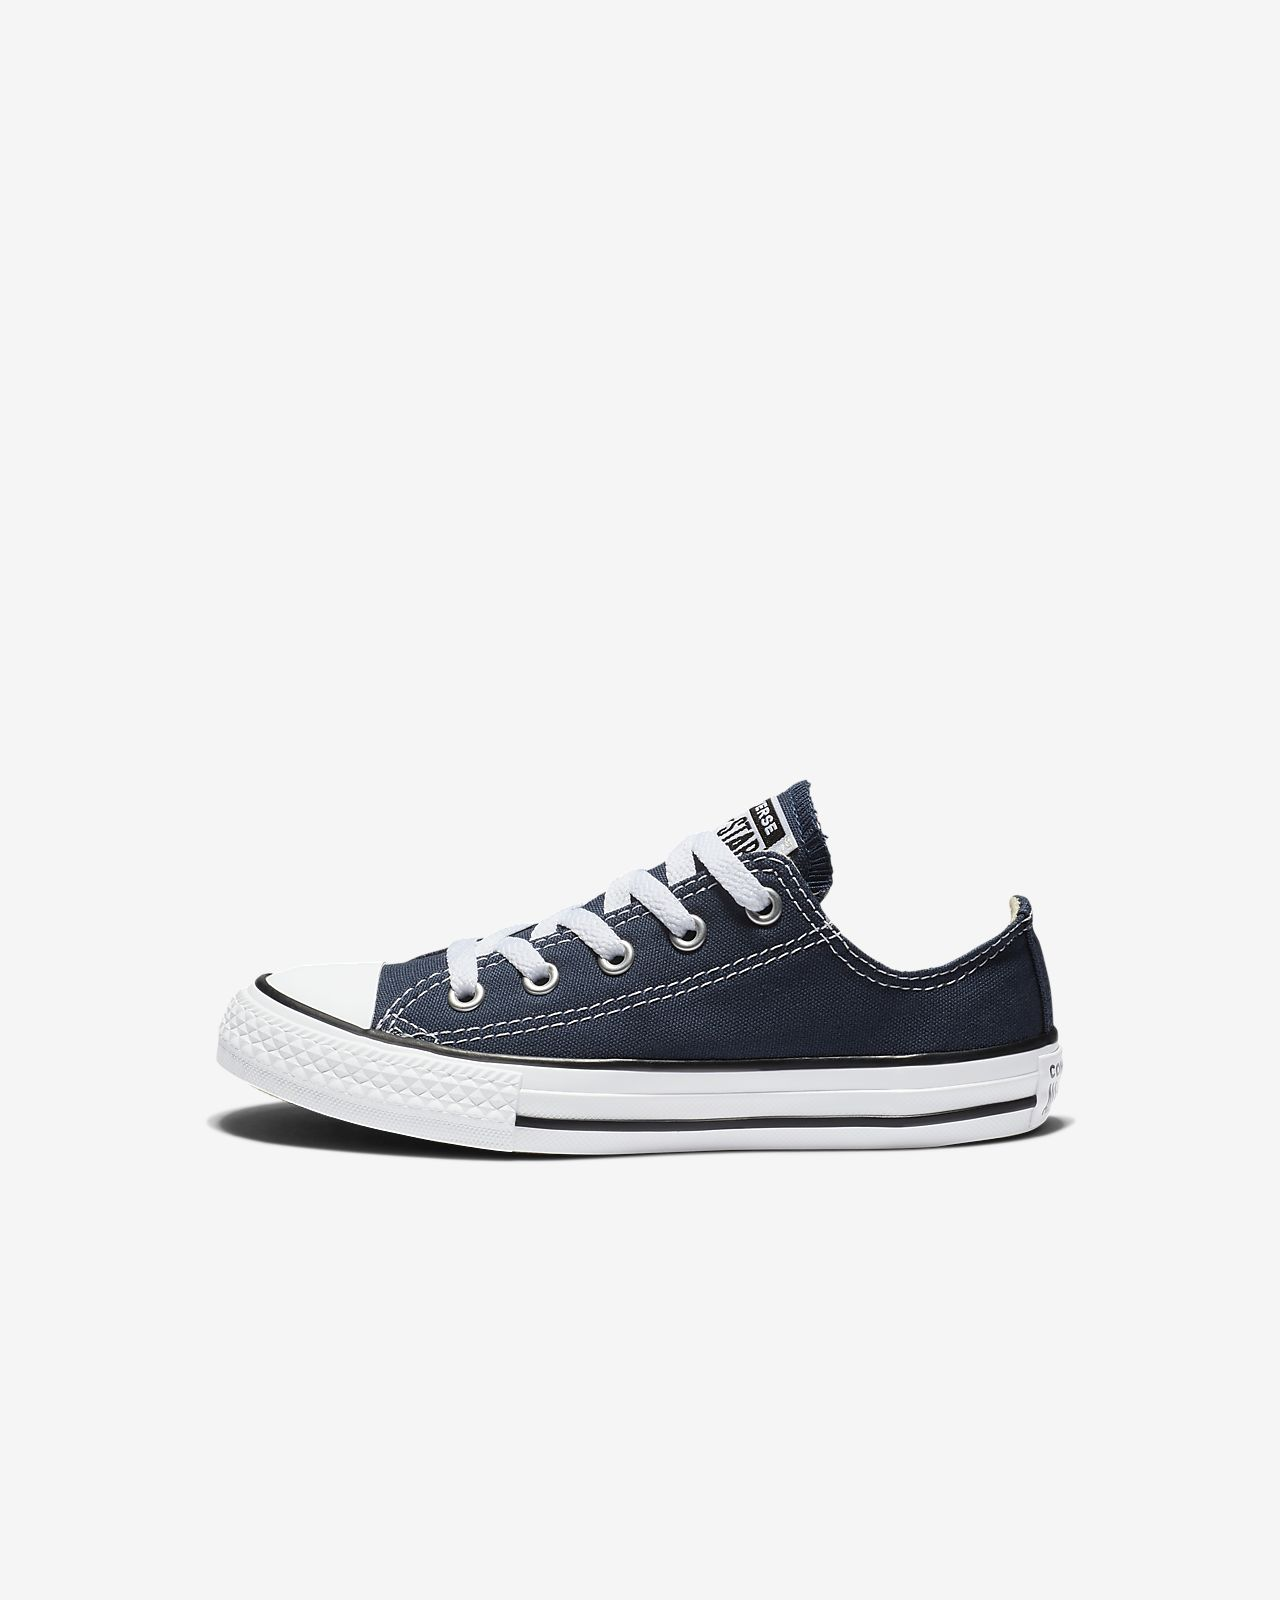 55e51a84c82c Converse Chuck Taylor All Star Low Top (10.5c-3y) Little Kids  Shoe ...